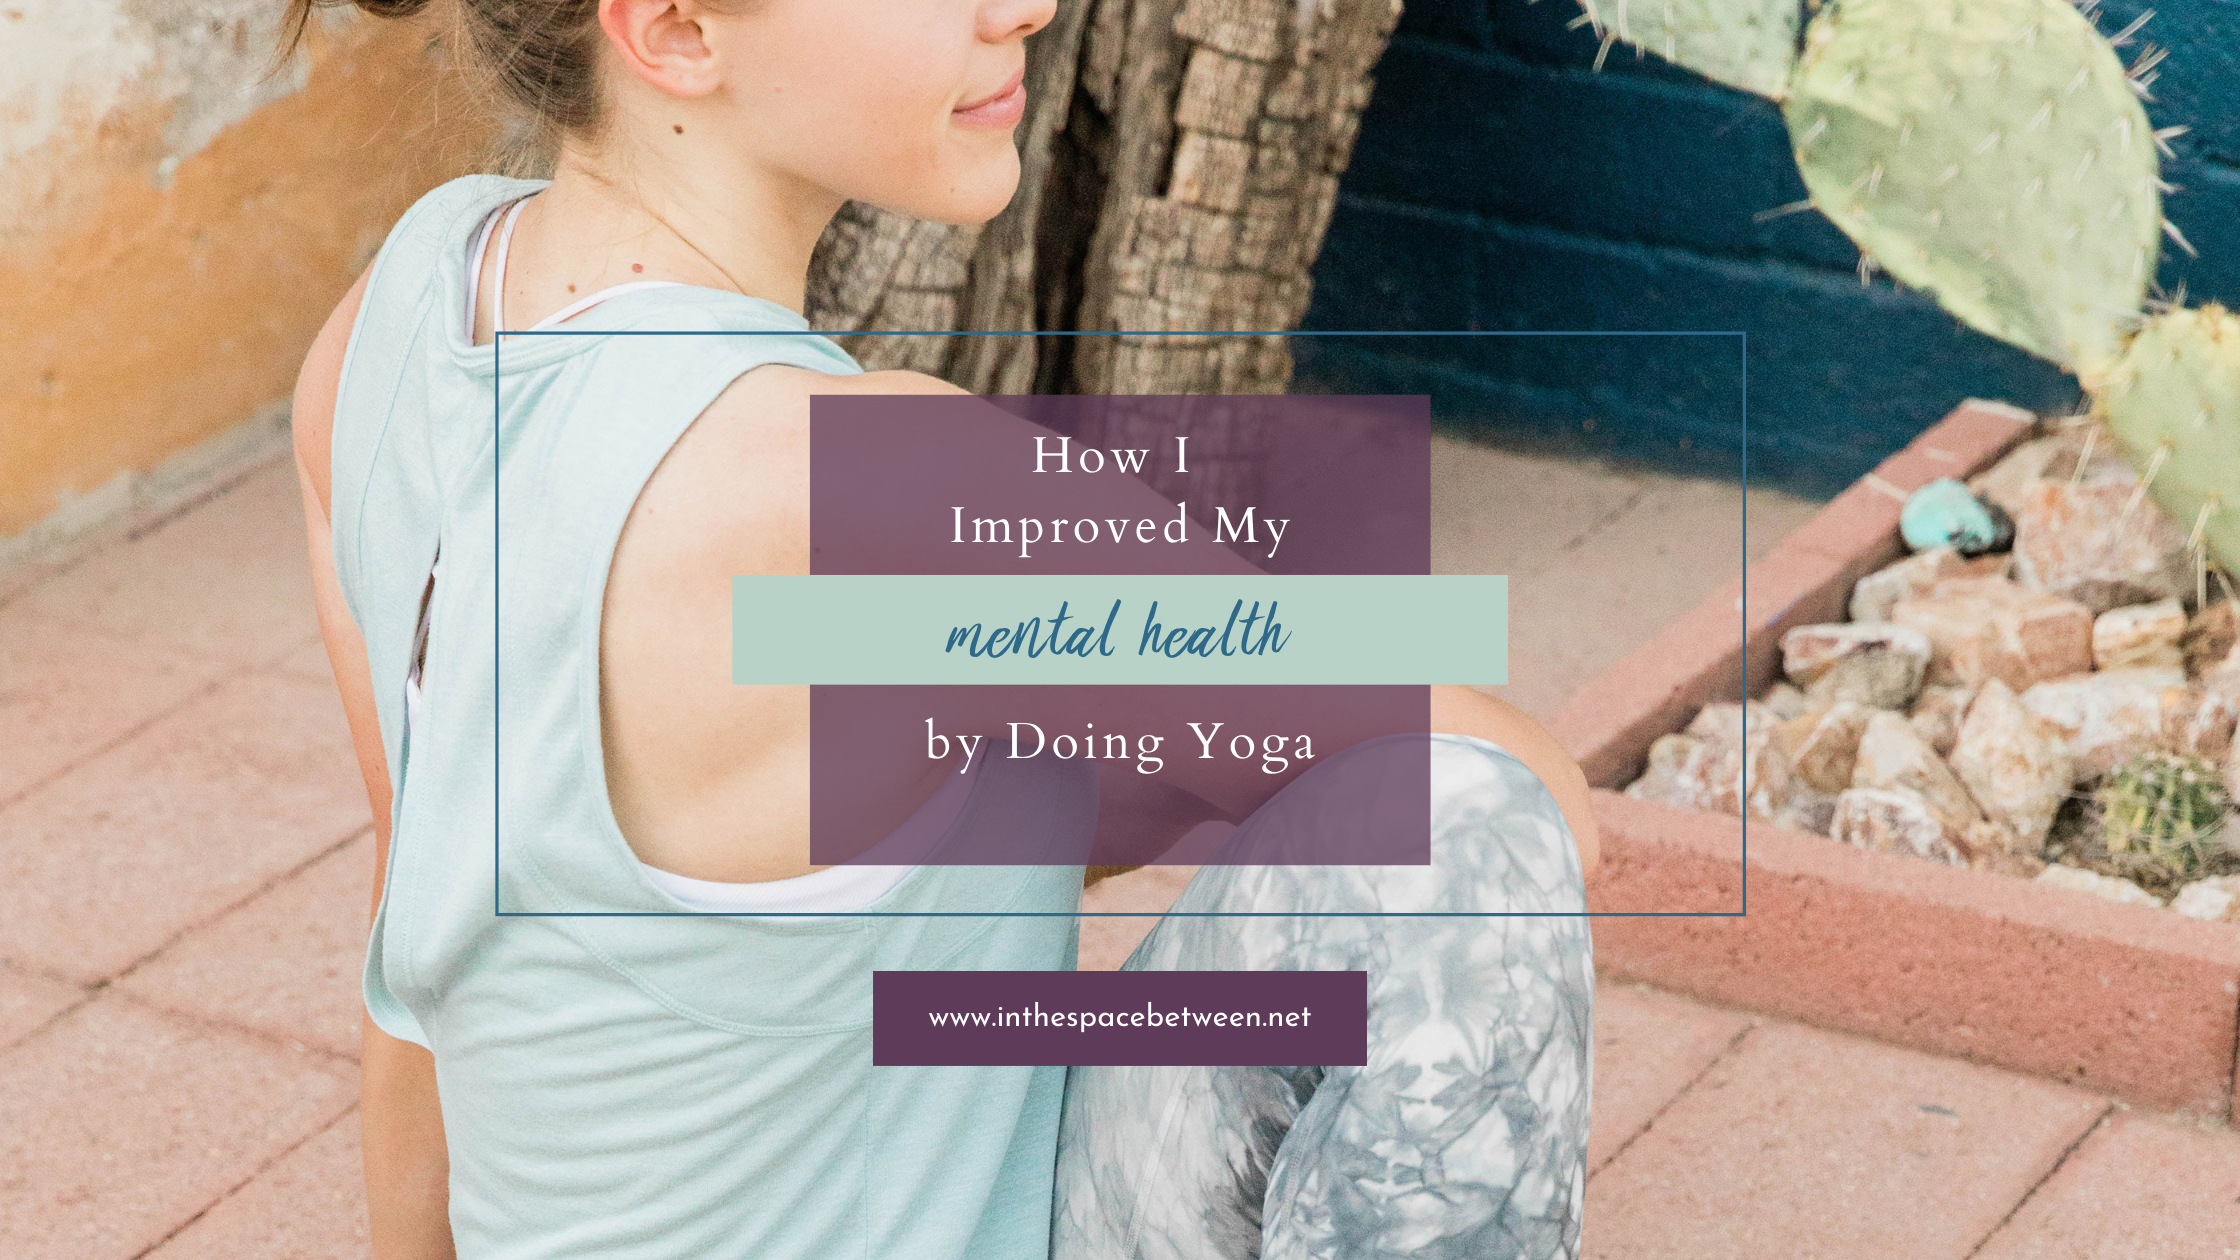 How I Improved My Mental Health by Doing Yoga